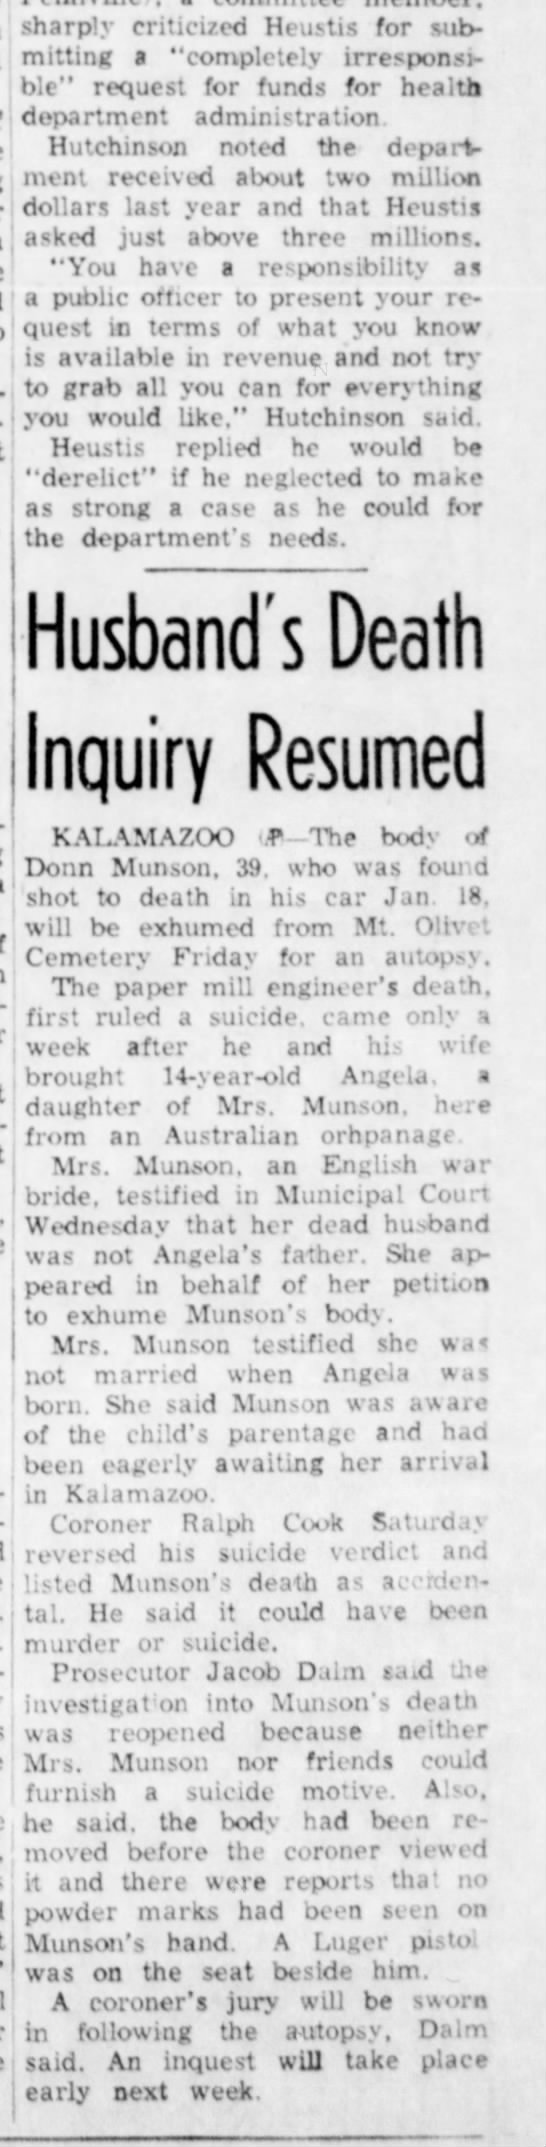 Donn Munson's Death Article Published in the Escamaba Daily Press, Feb. 6, 1958 - sharply criticized Heustis for sub- mitting a...